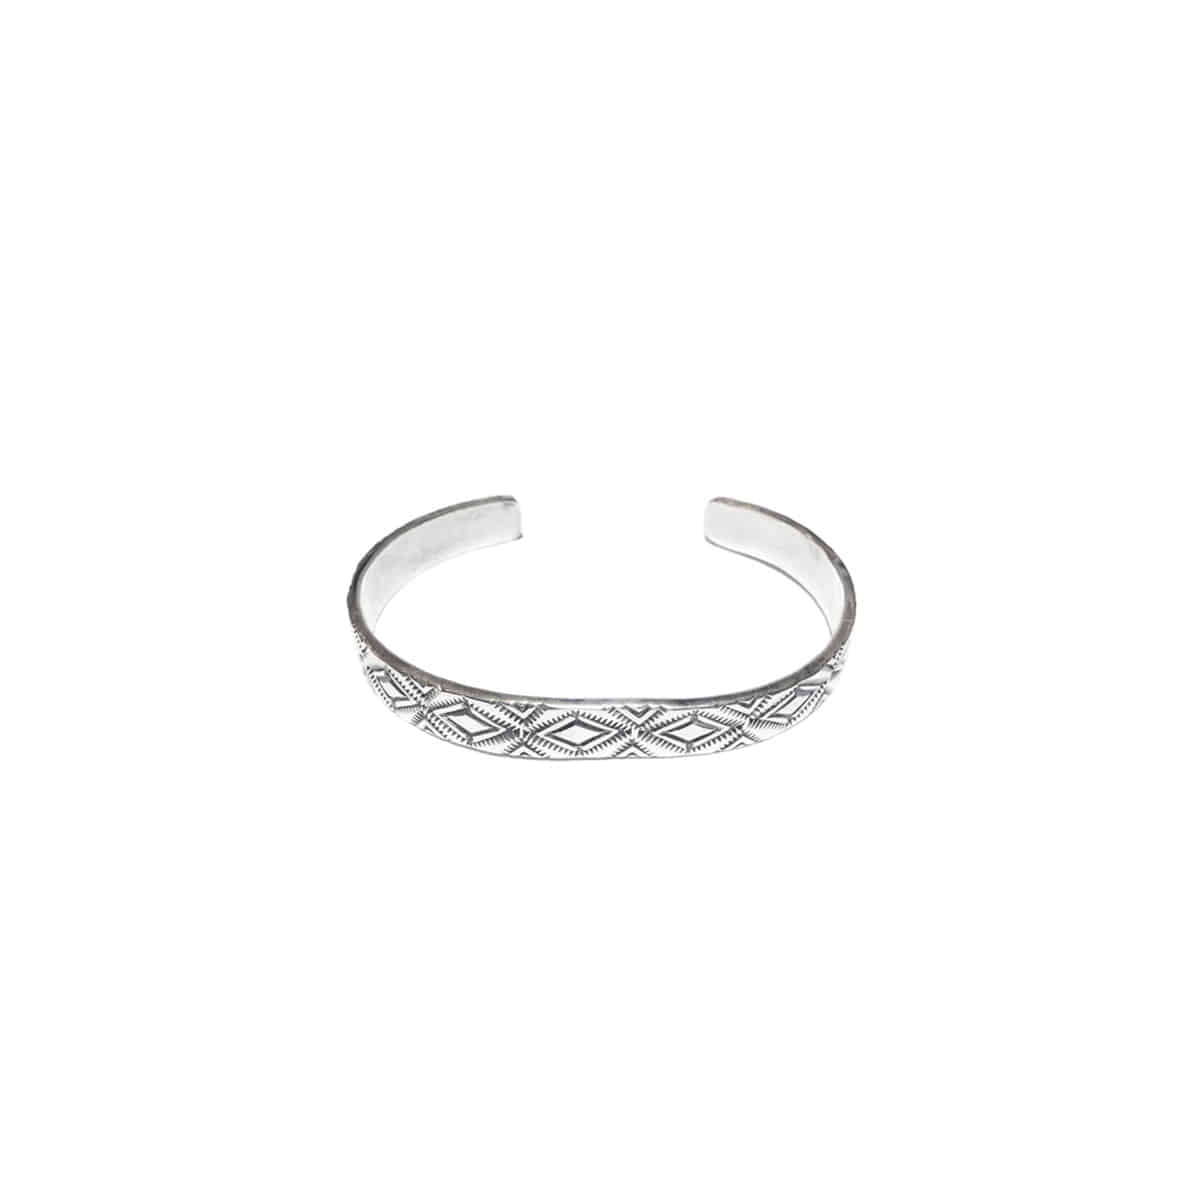 [NORTH WORKS] 900 SILVER STAMP BANGLE 'W-038'